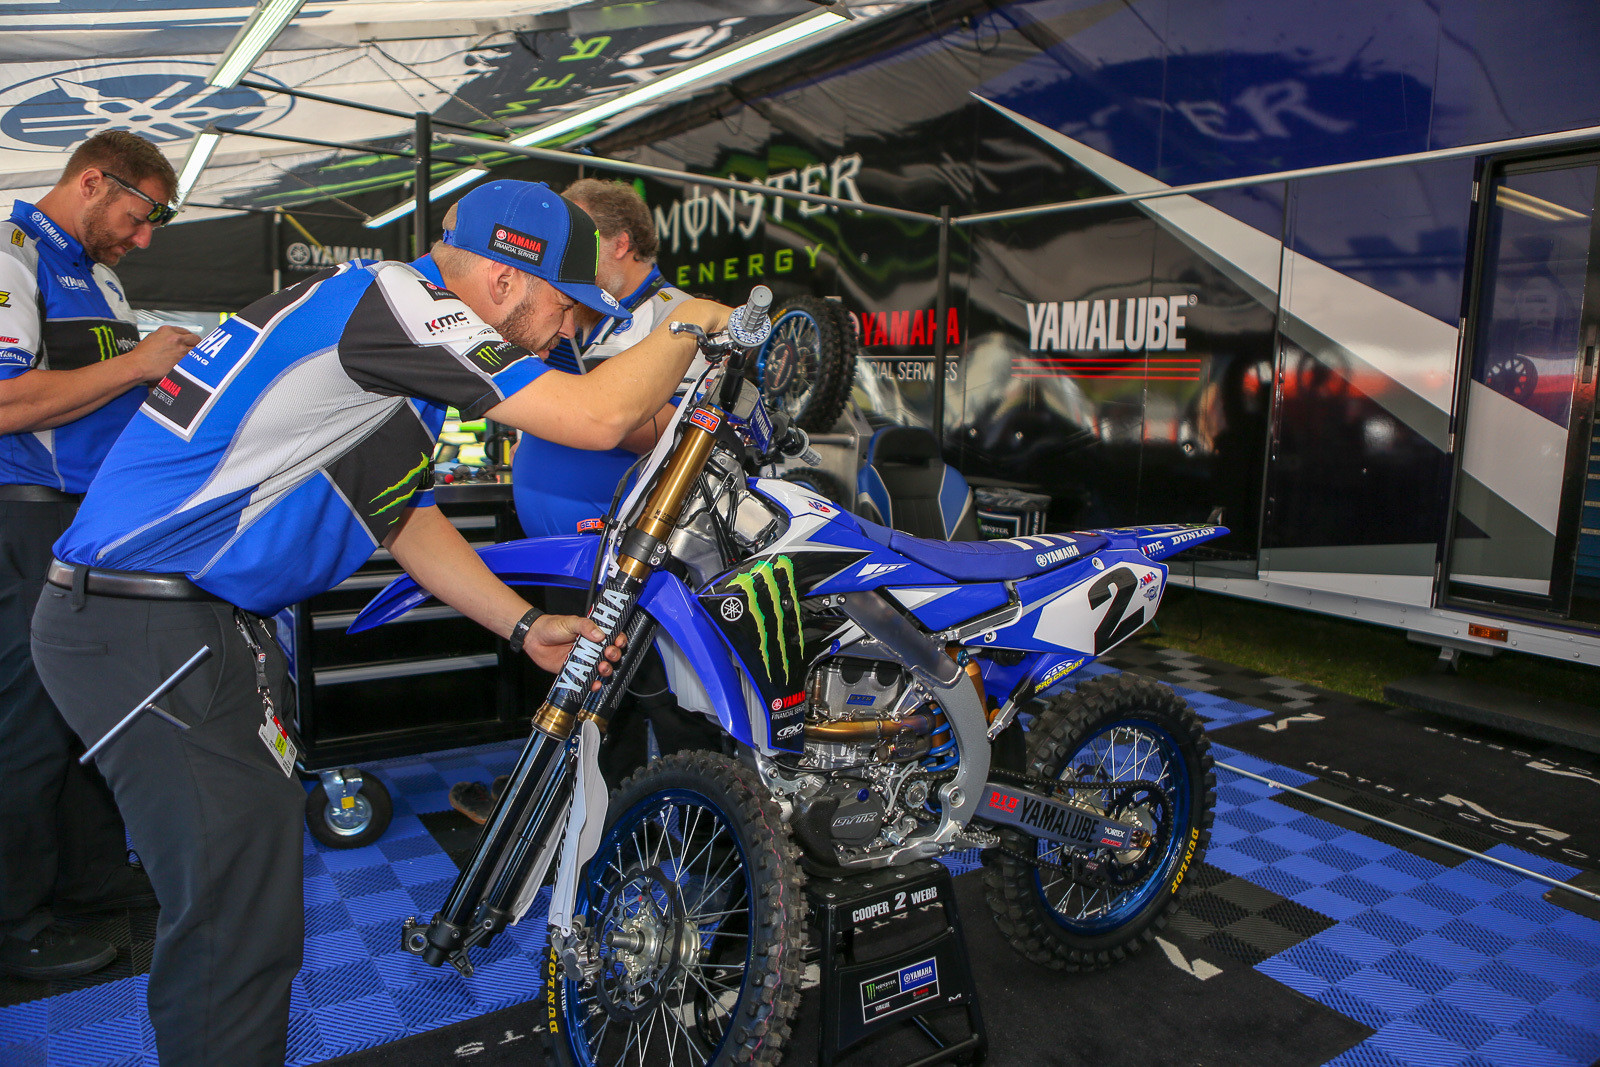 The Yamaha Factory Team pit area and gear had a different look after they parted company with their former title sponsor, and had to remove a ton of their logos.